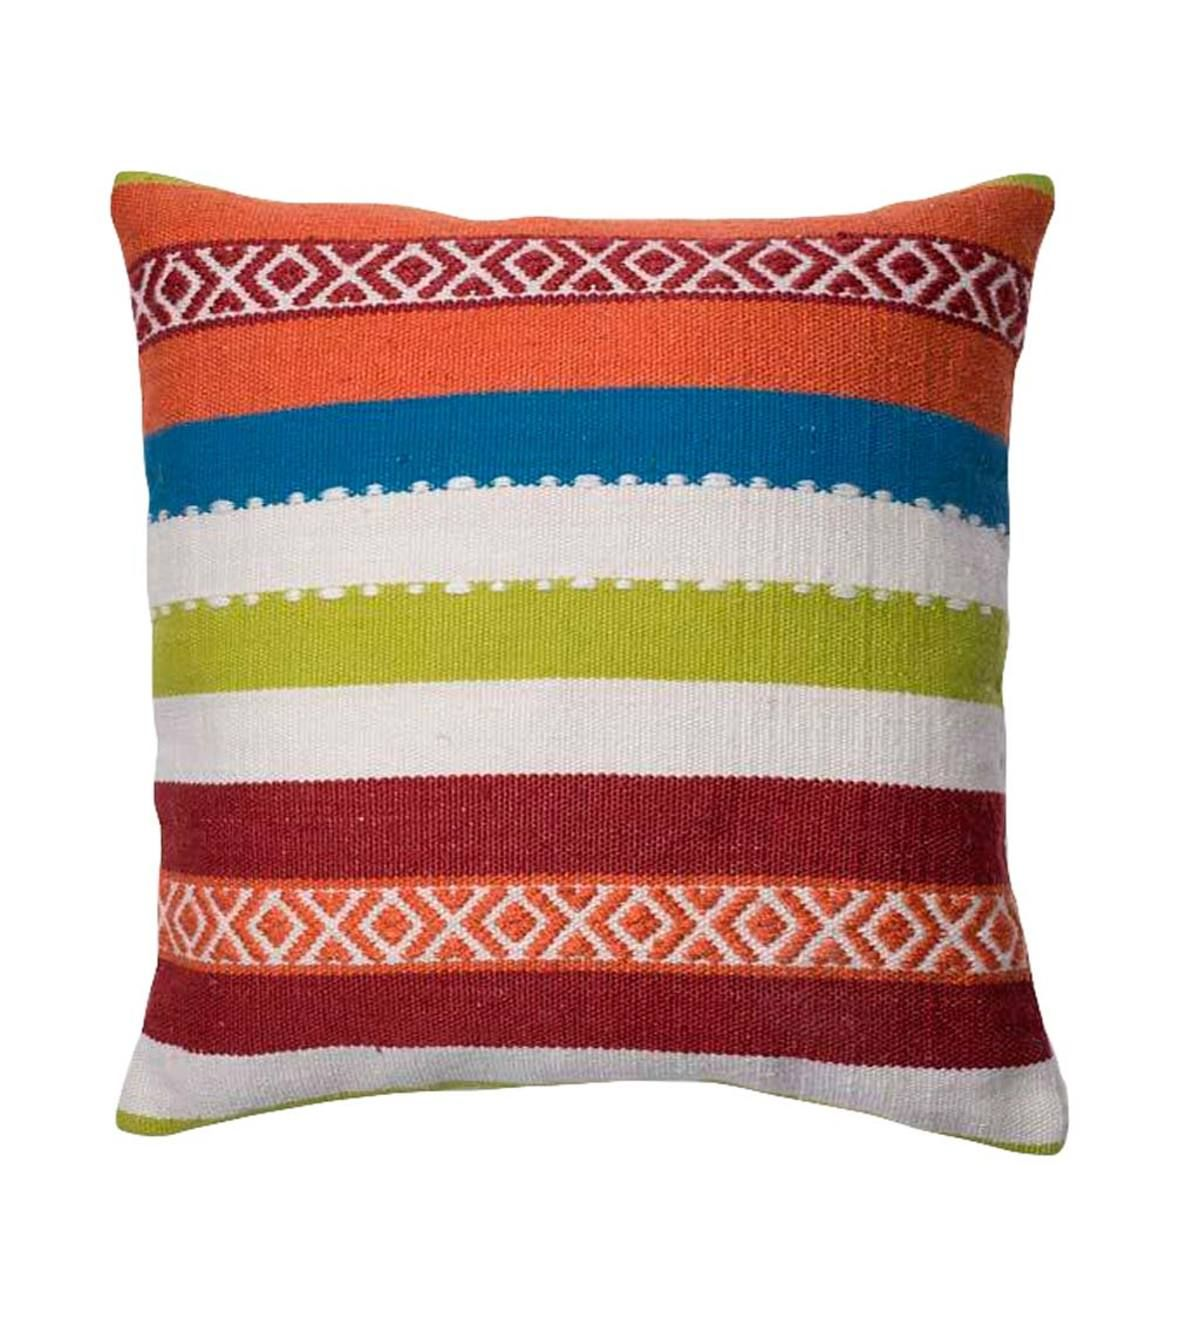 This Perfectly Colorful Throw Pillow It Can Also Serve As A Floor Pillow If Need Be Is Done In An Vibrant Stripe Loloi Pillows Colorful Throw Pillows Pillows